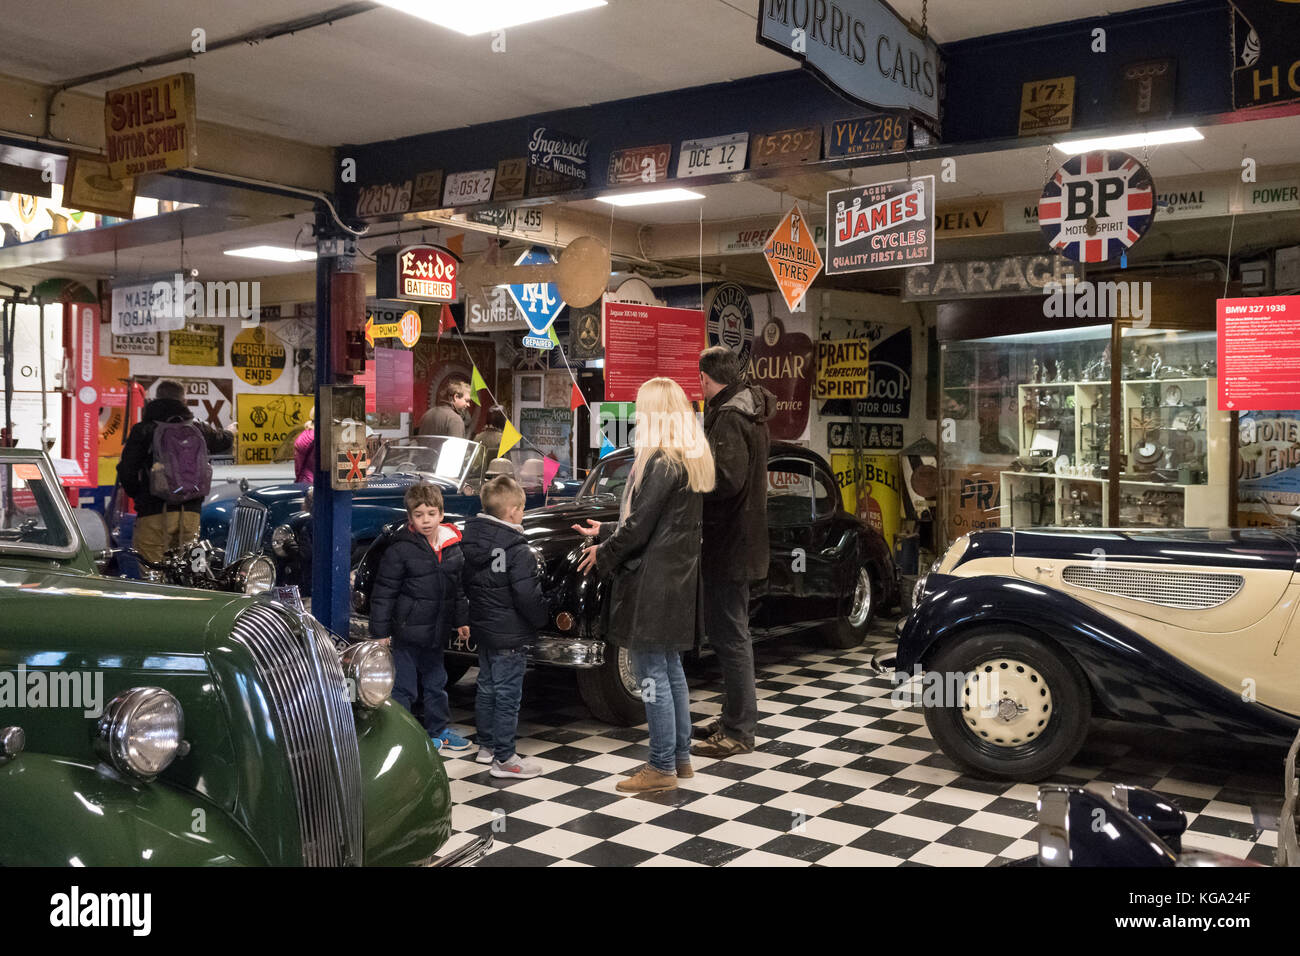 The Cotswold Motoring Museum & Toy Collection, Bourton on the Water, Gloucestershire, England, UK - Stock Image